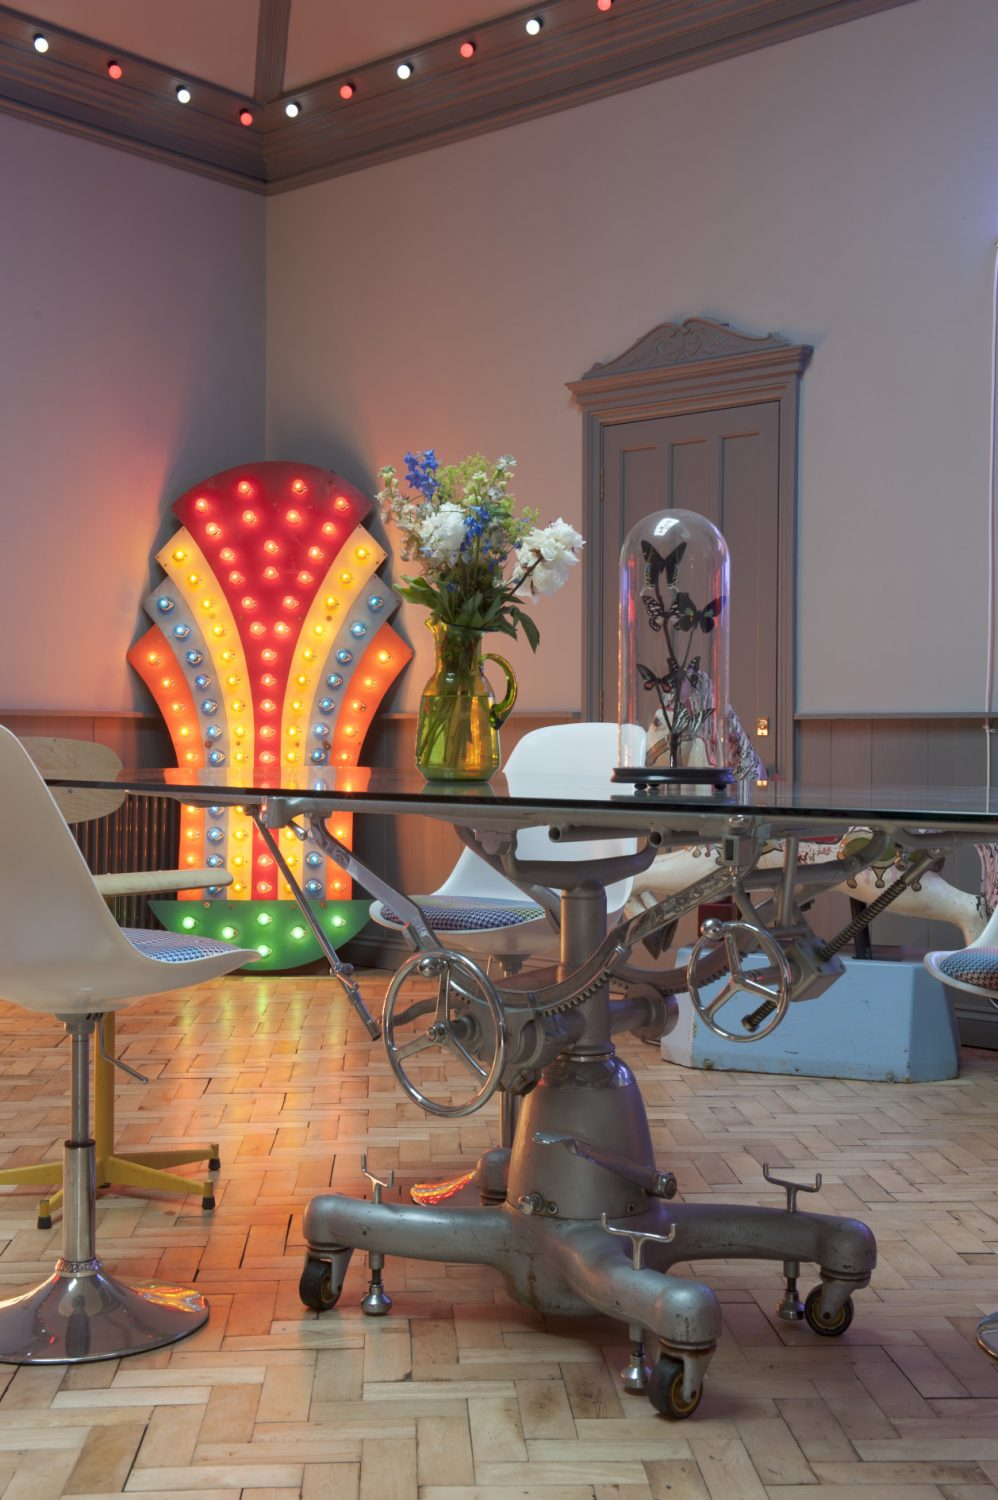 Philip, a former director of the Blackpool Festival, sourced the 30-year-old, seven-foot high, 150-lamp road feature, which stands in one corner of the room, from Blackpool Illuminations